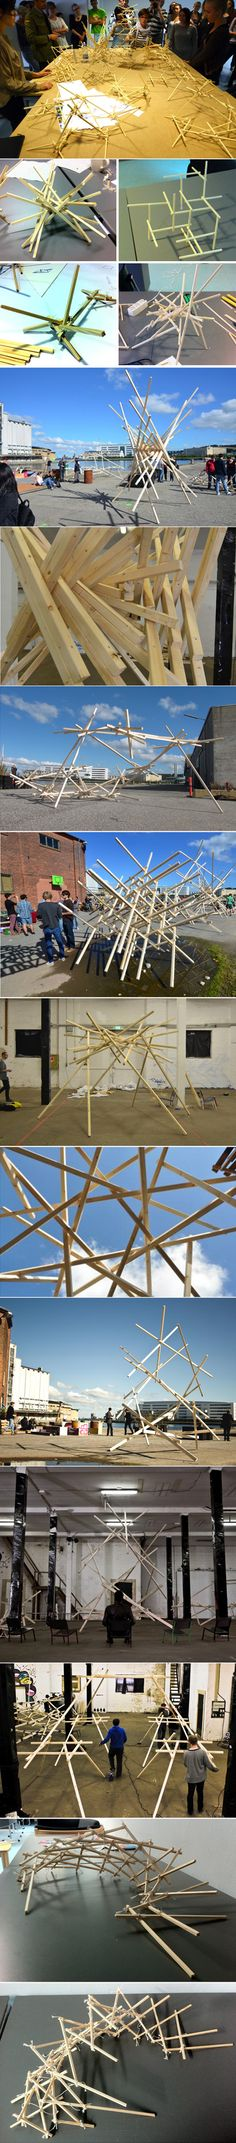 http://www.albertopugnale.com/eng_research.html Workshop on structural reciprocity which took place in Aalborg, during the fall semester 2011, Master of Science in Architectural design, coordinators Alberto Pugnale and Dario Parigi.